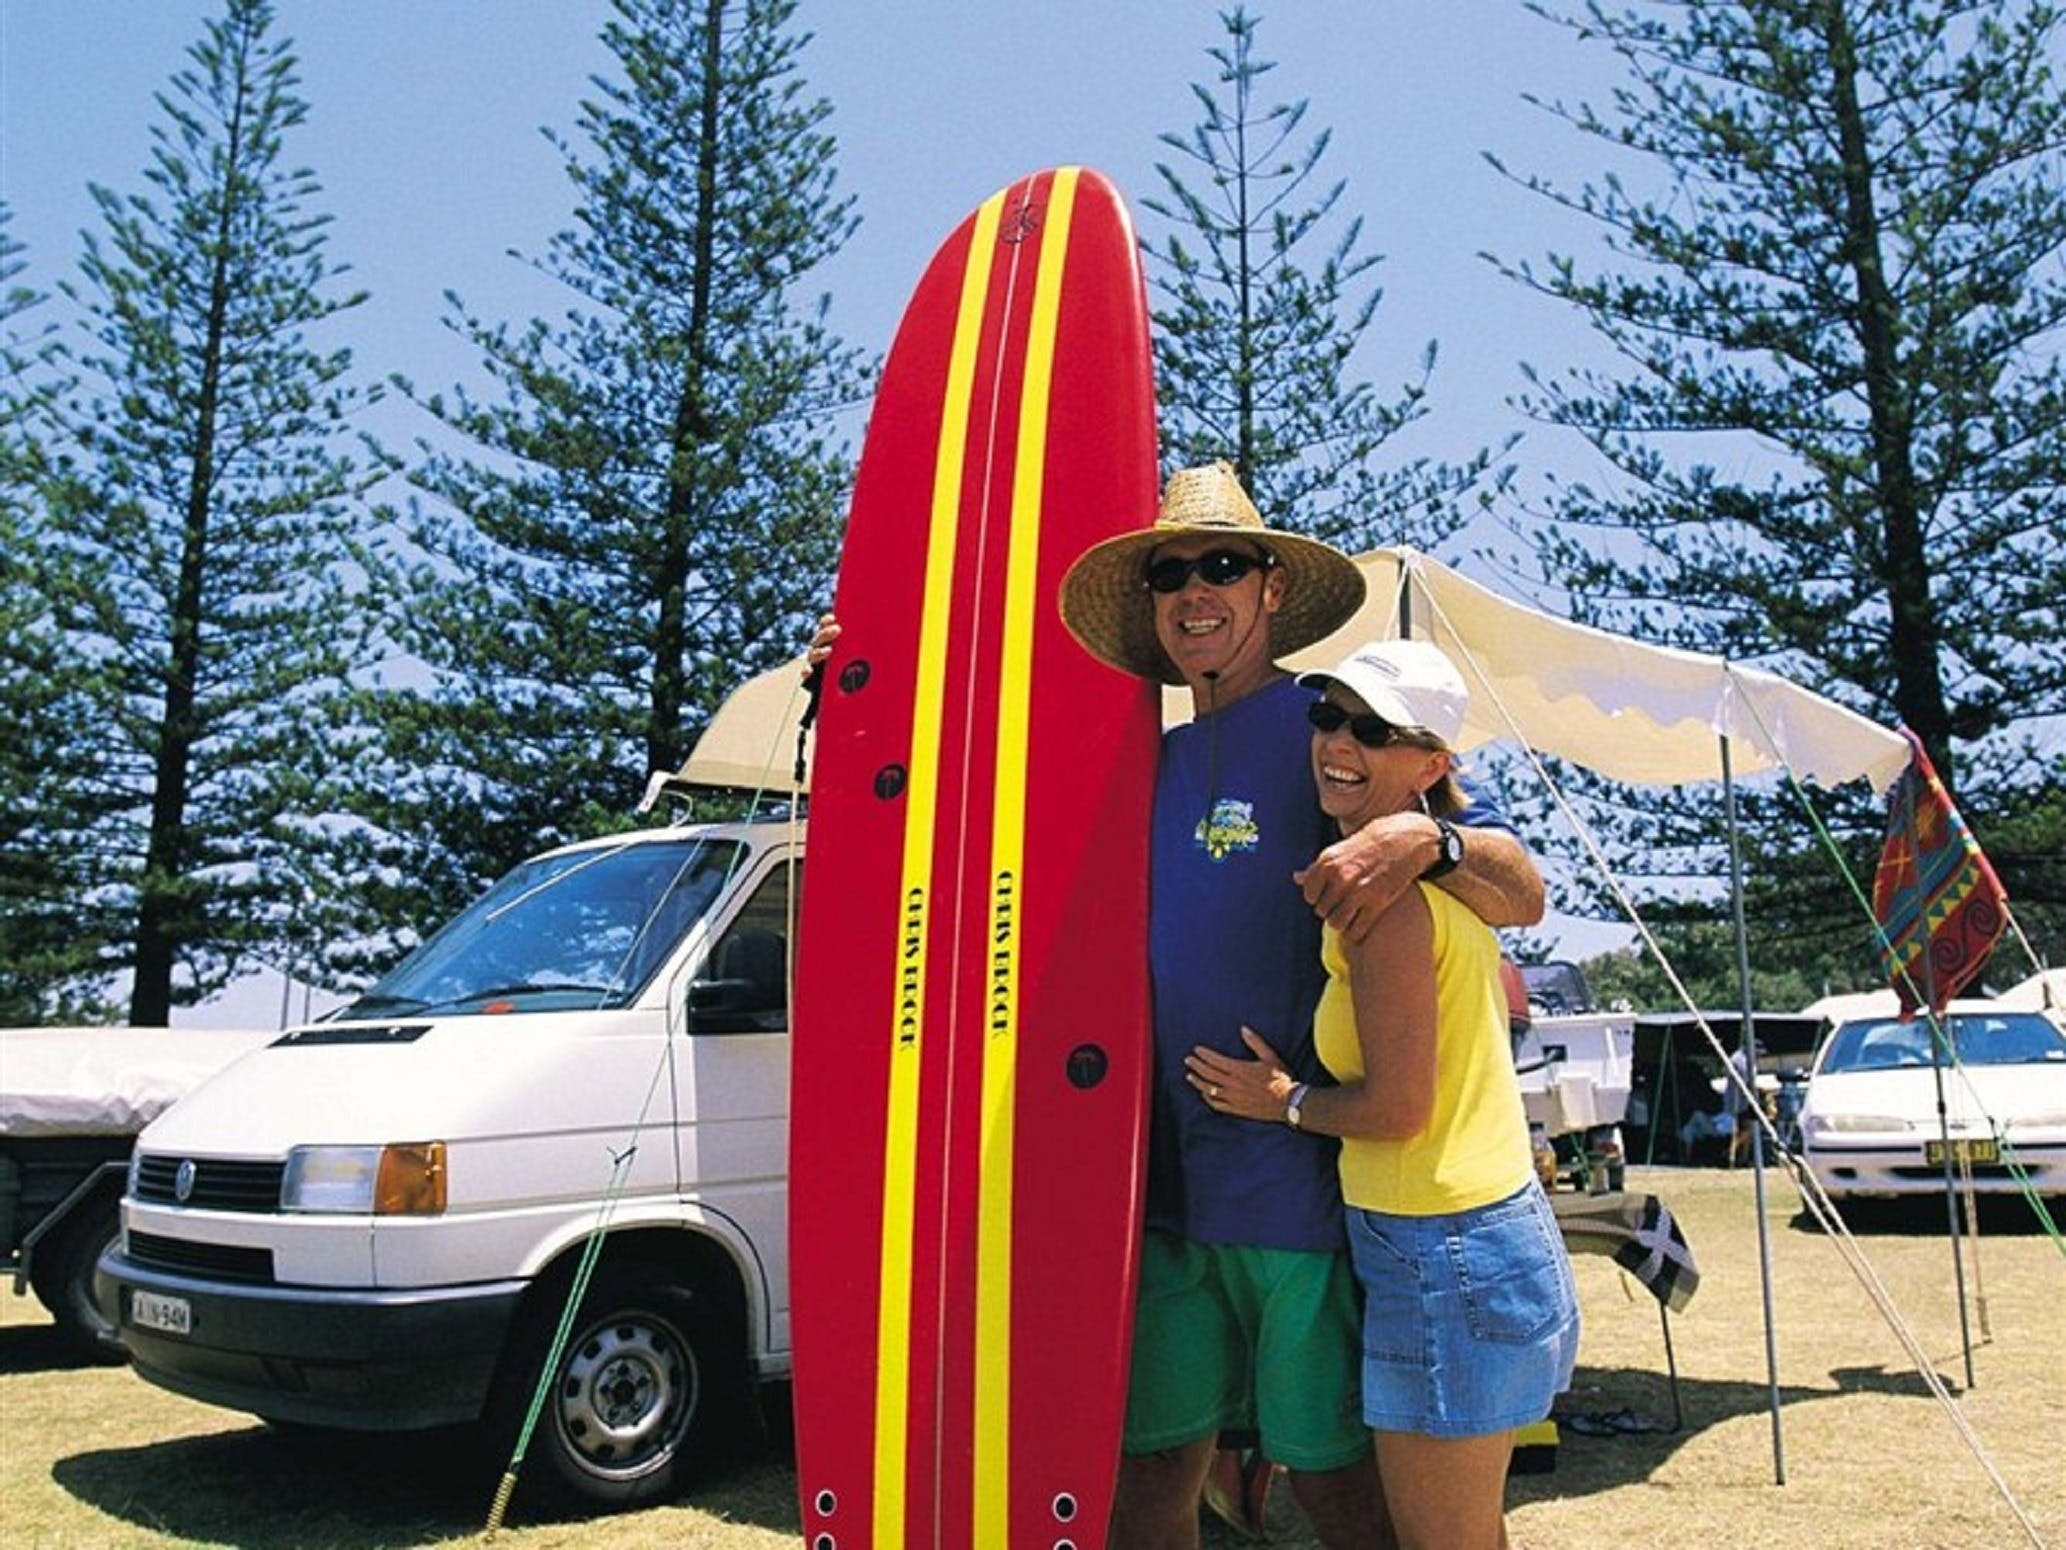 Malibu Classic - Surfers Gold Coast